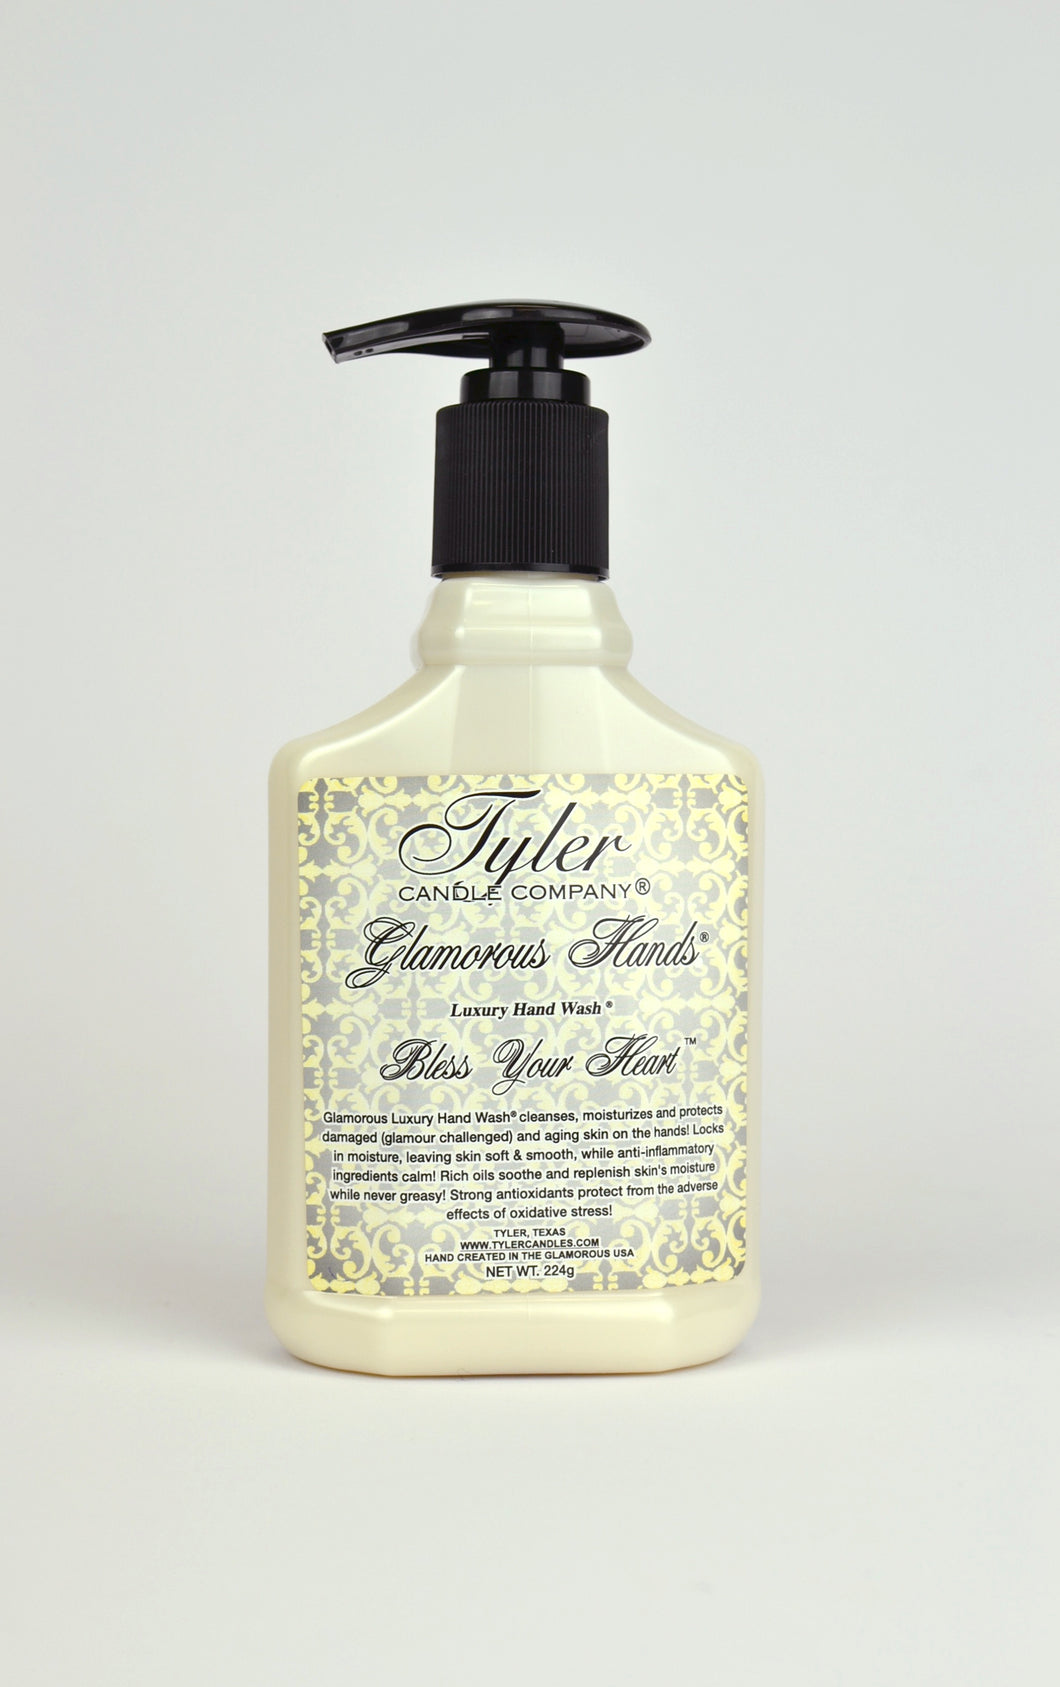 8 oz french market hand soap